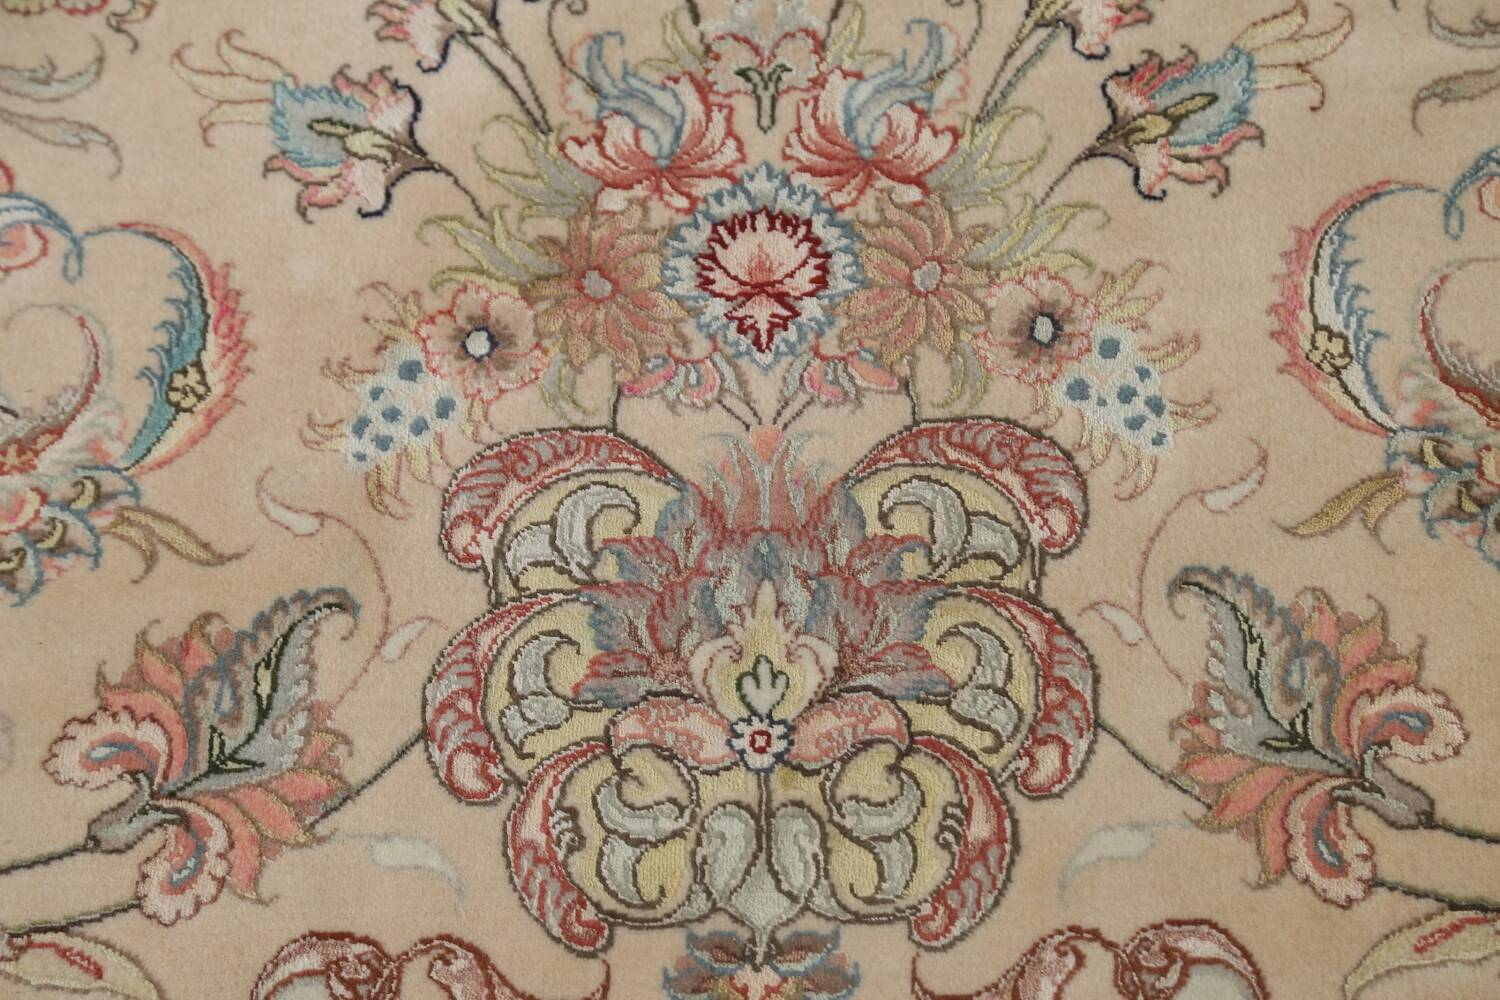 100% Vegetable Dye Floral Tabriz Persian Area Rug 22x23 Round image 9